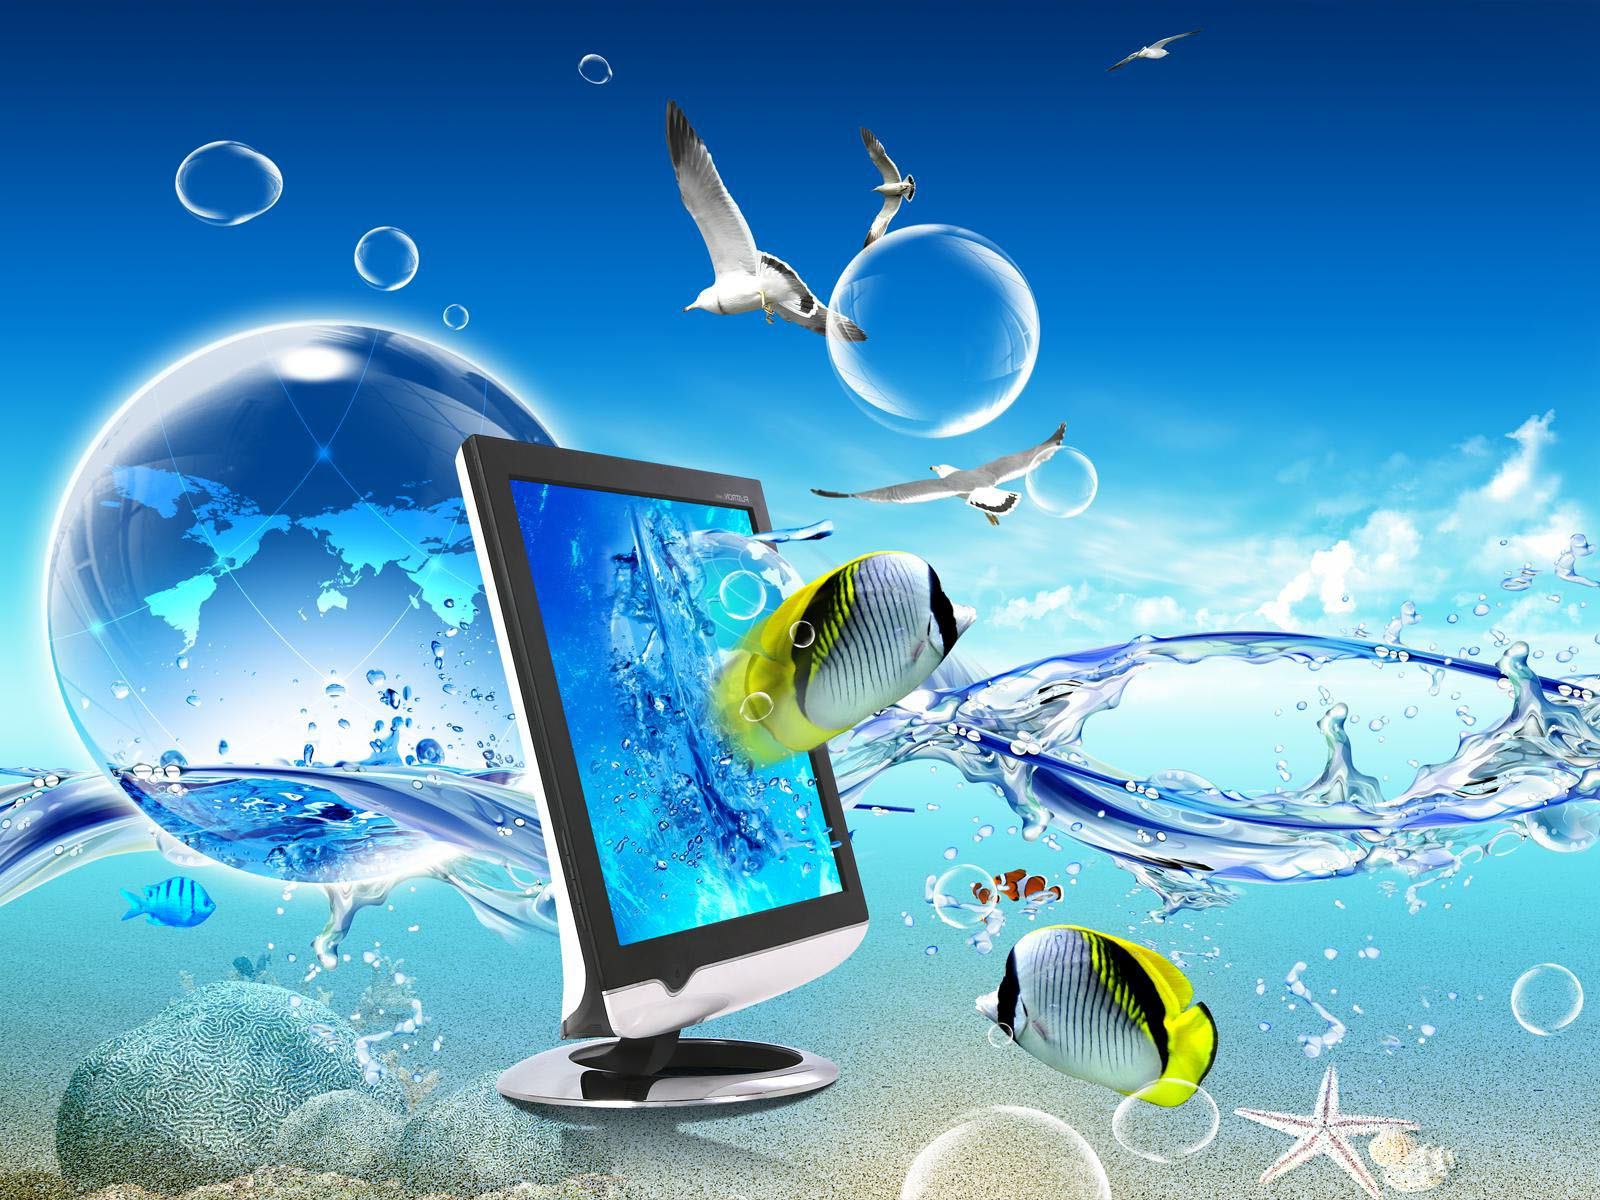 Computer-Find-best-latest-Computer-in-HD-for-wallpaper-wpc5803623